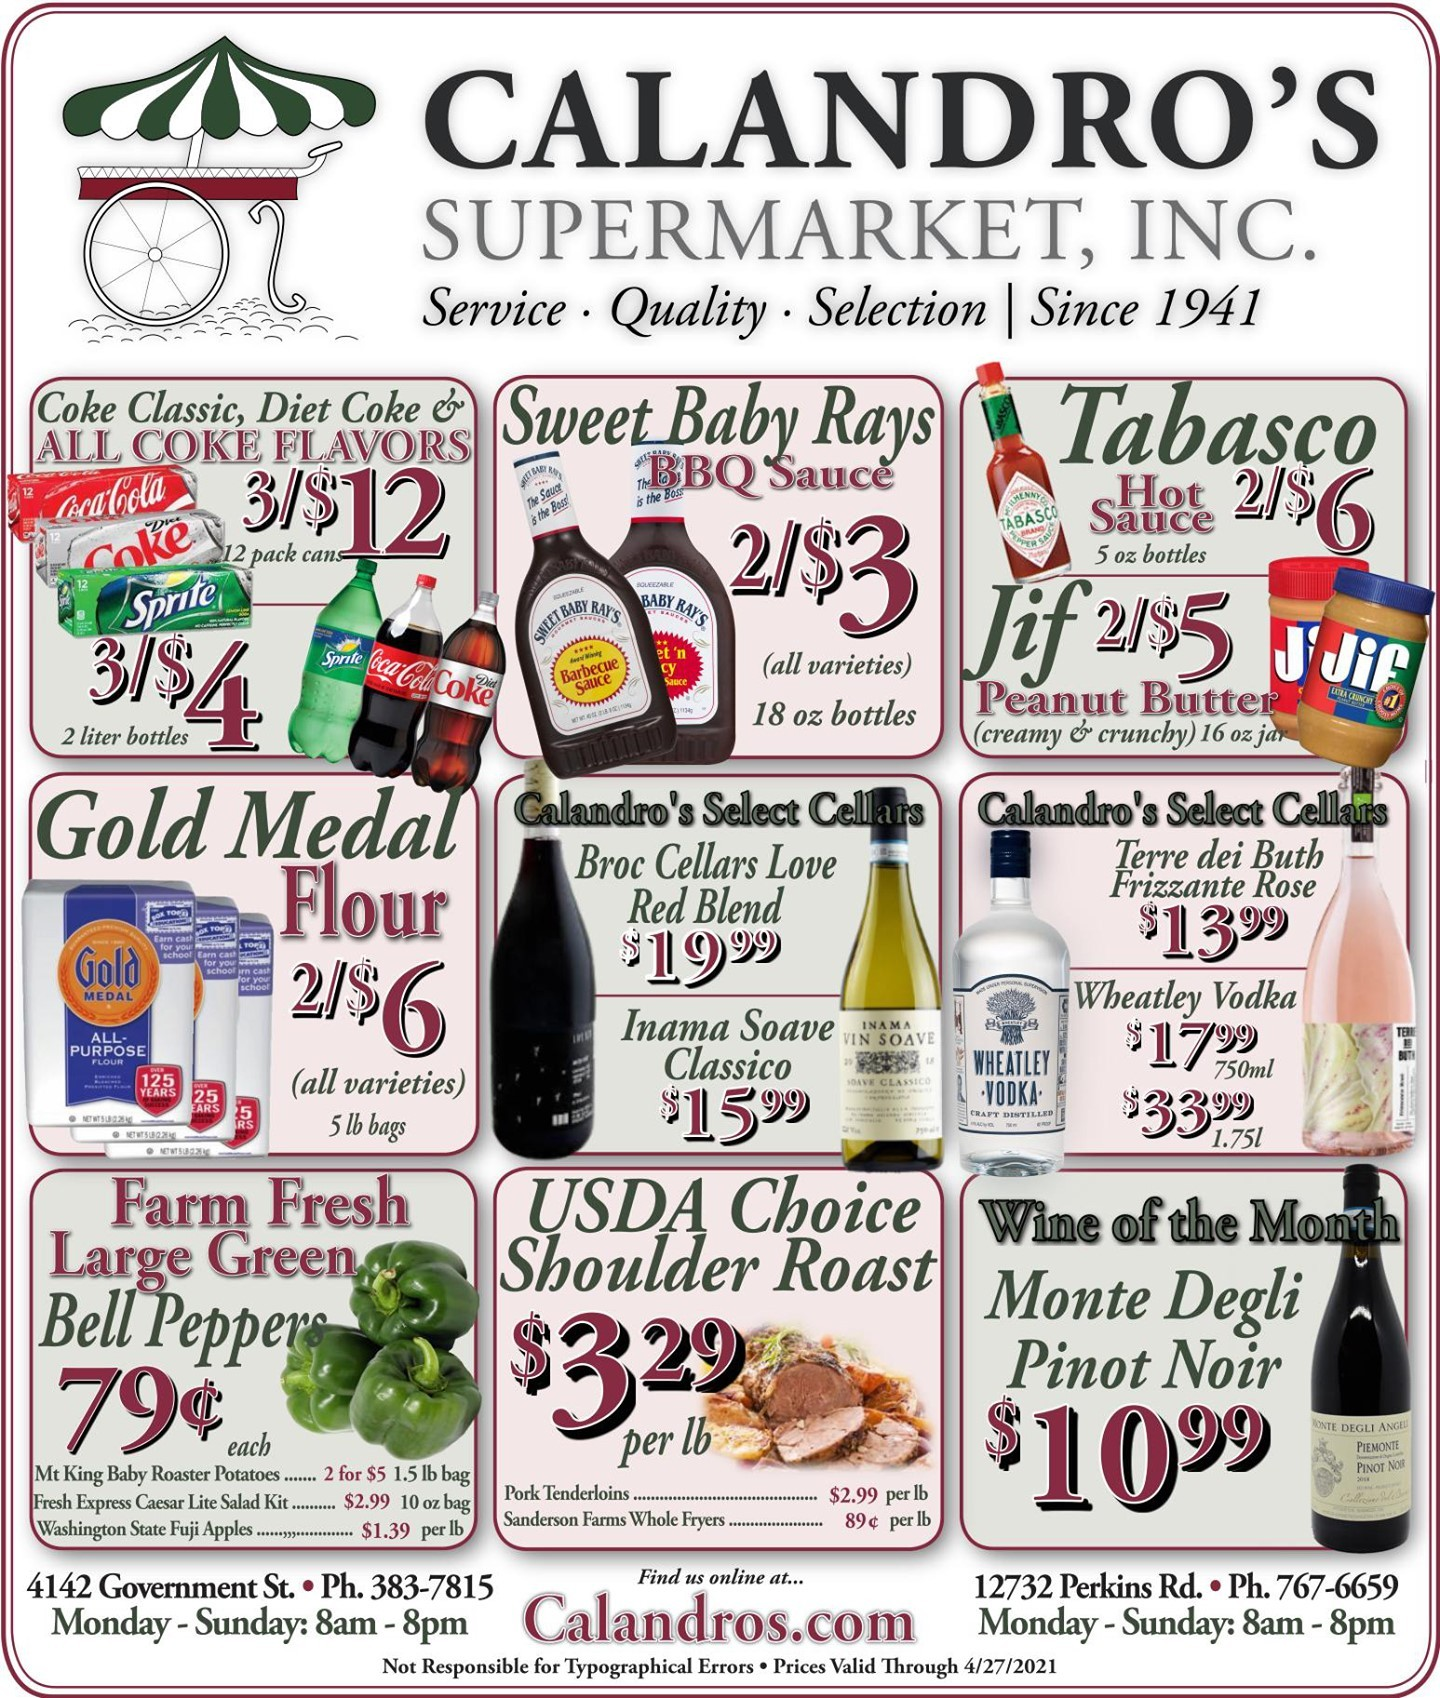 Calandro's Sensational Specials and Deals for This Week! (4/22/2021 – 4/27/2021) http://dlvr.it/RyFB4Z…